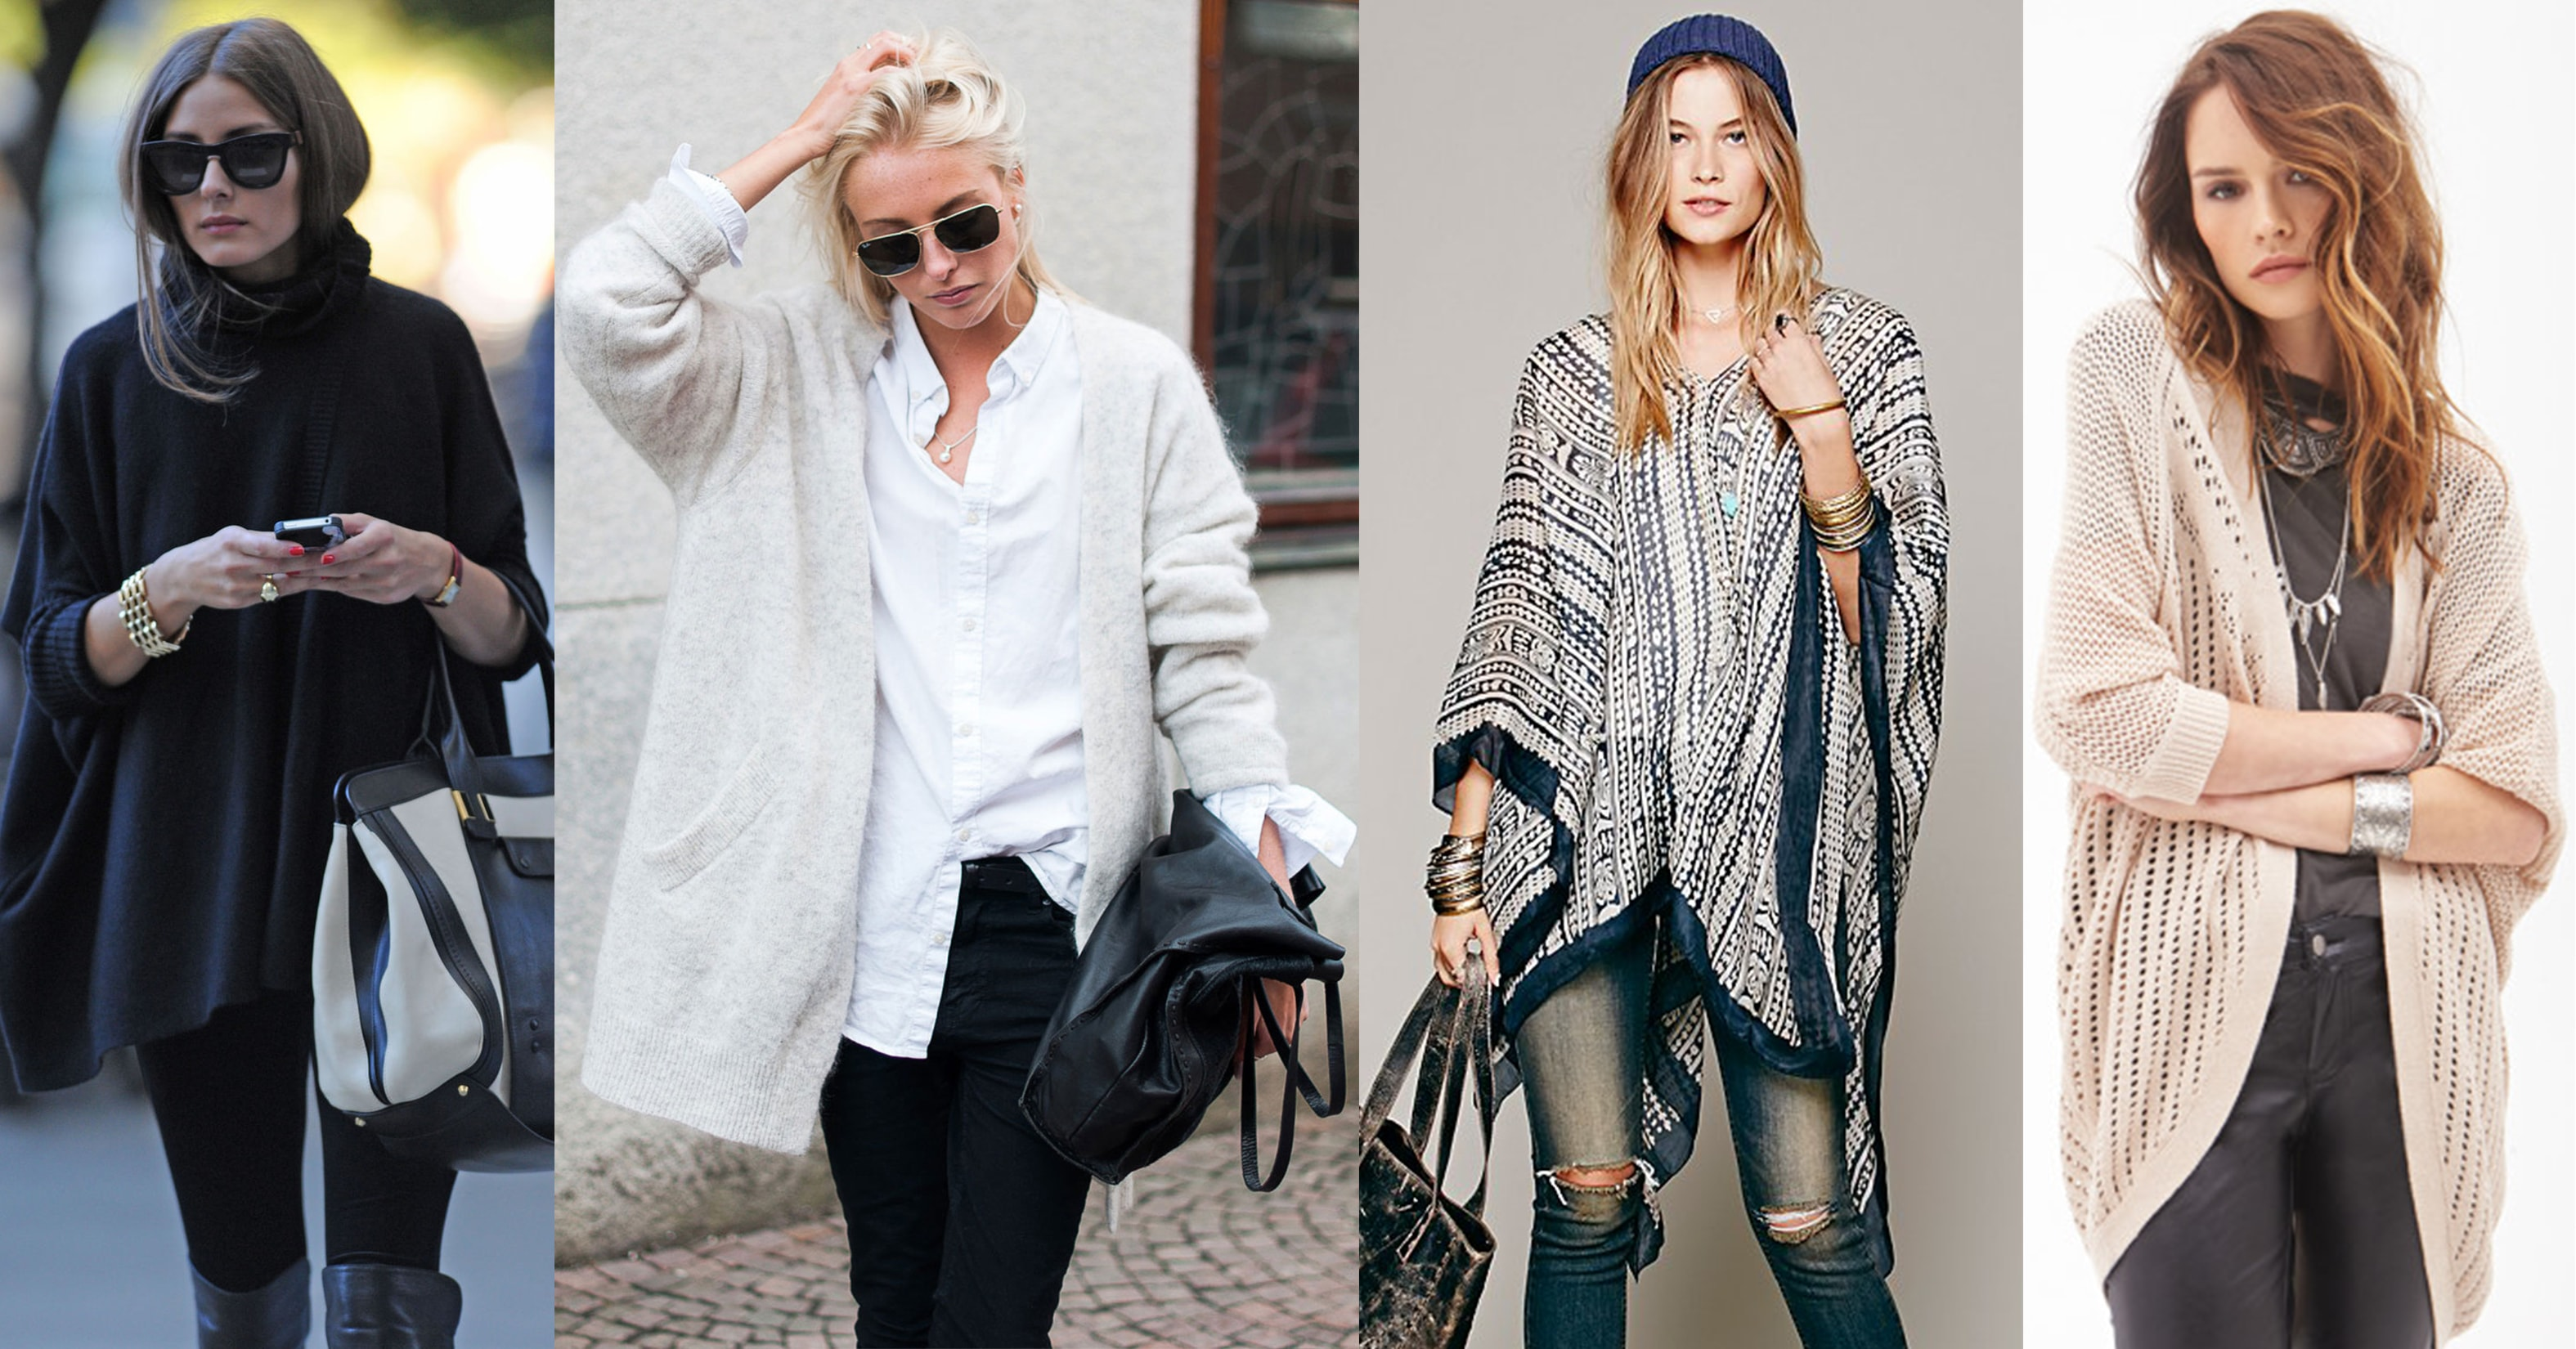 how_to_rock_comfy_winterwear_at_work_cardigans_ponchos_fashion_style